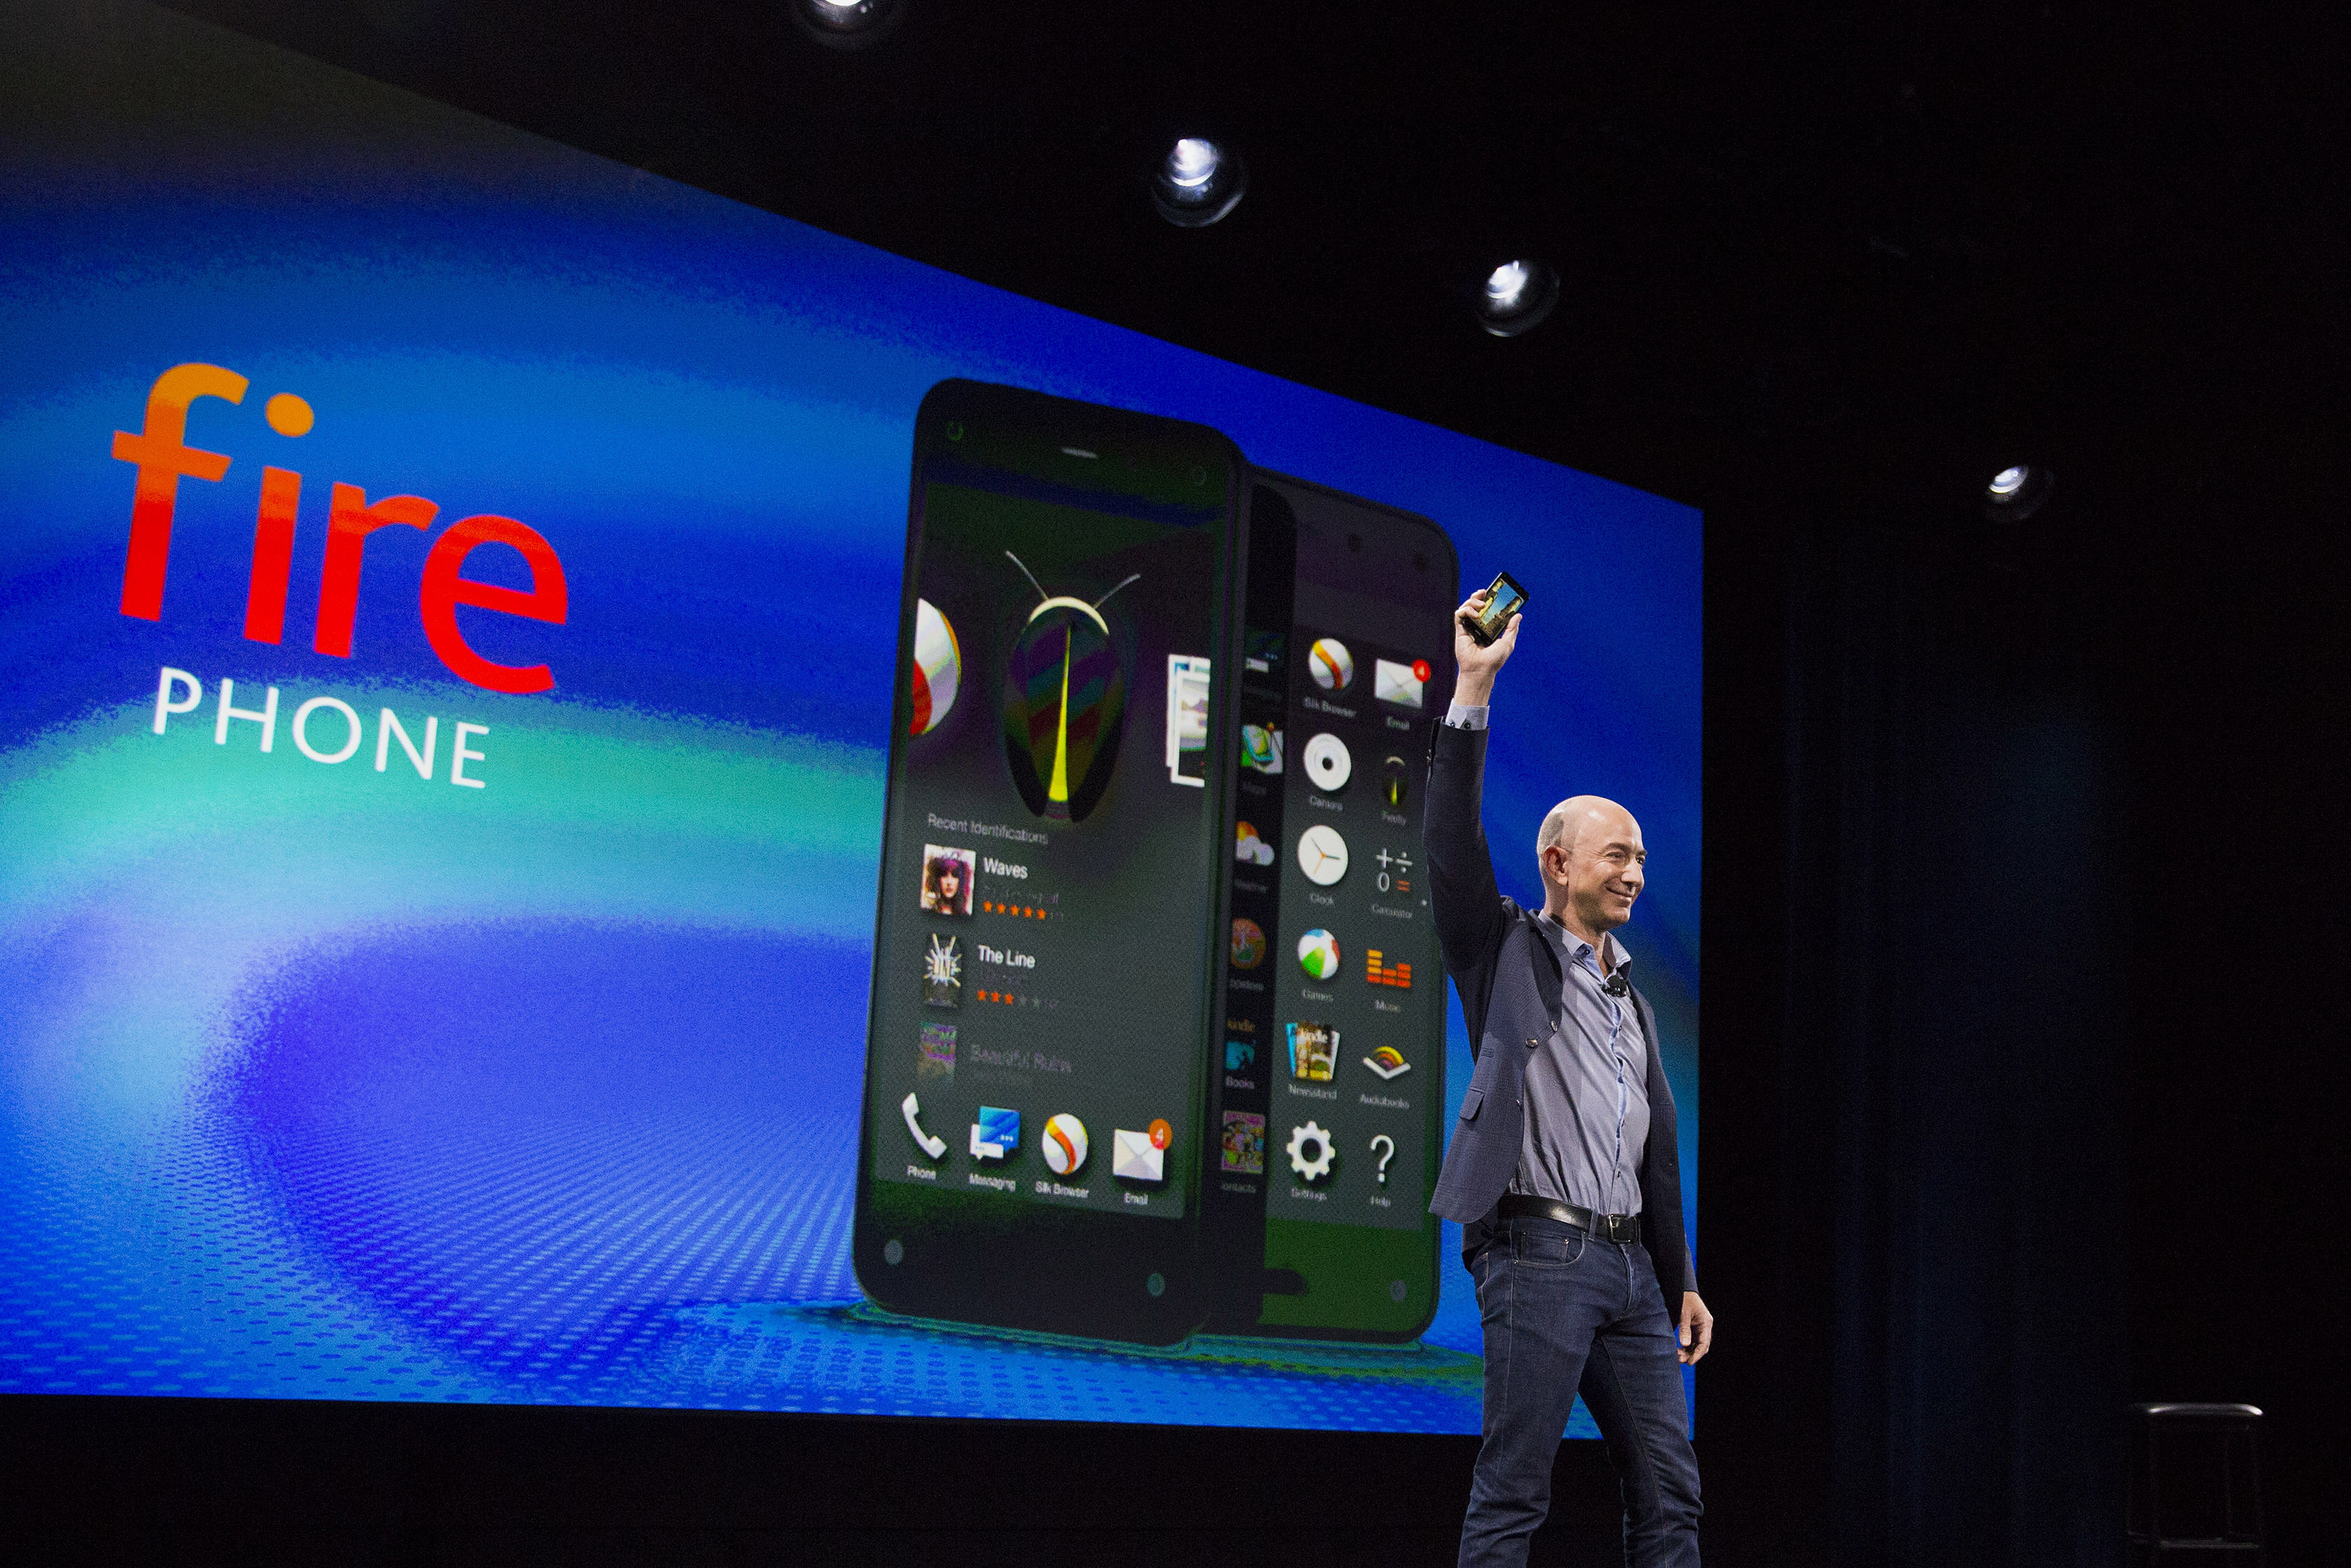 Amazon's Handset to Help Bezos Make Direct Appeal to Users